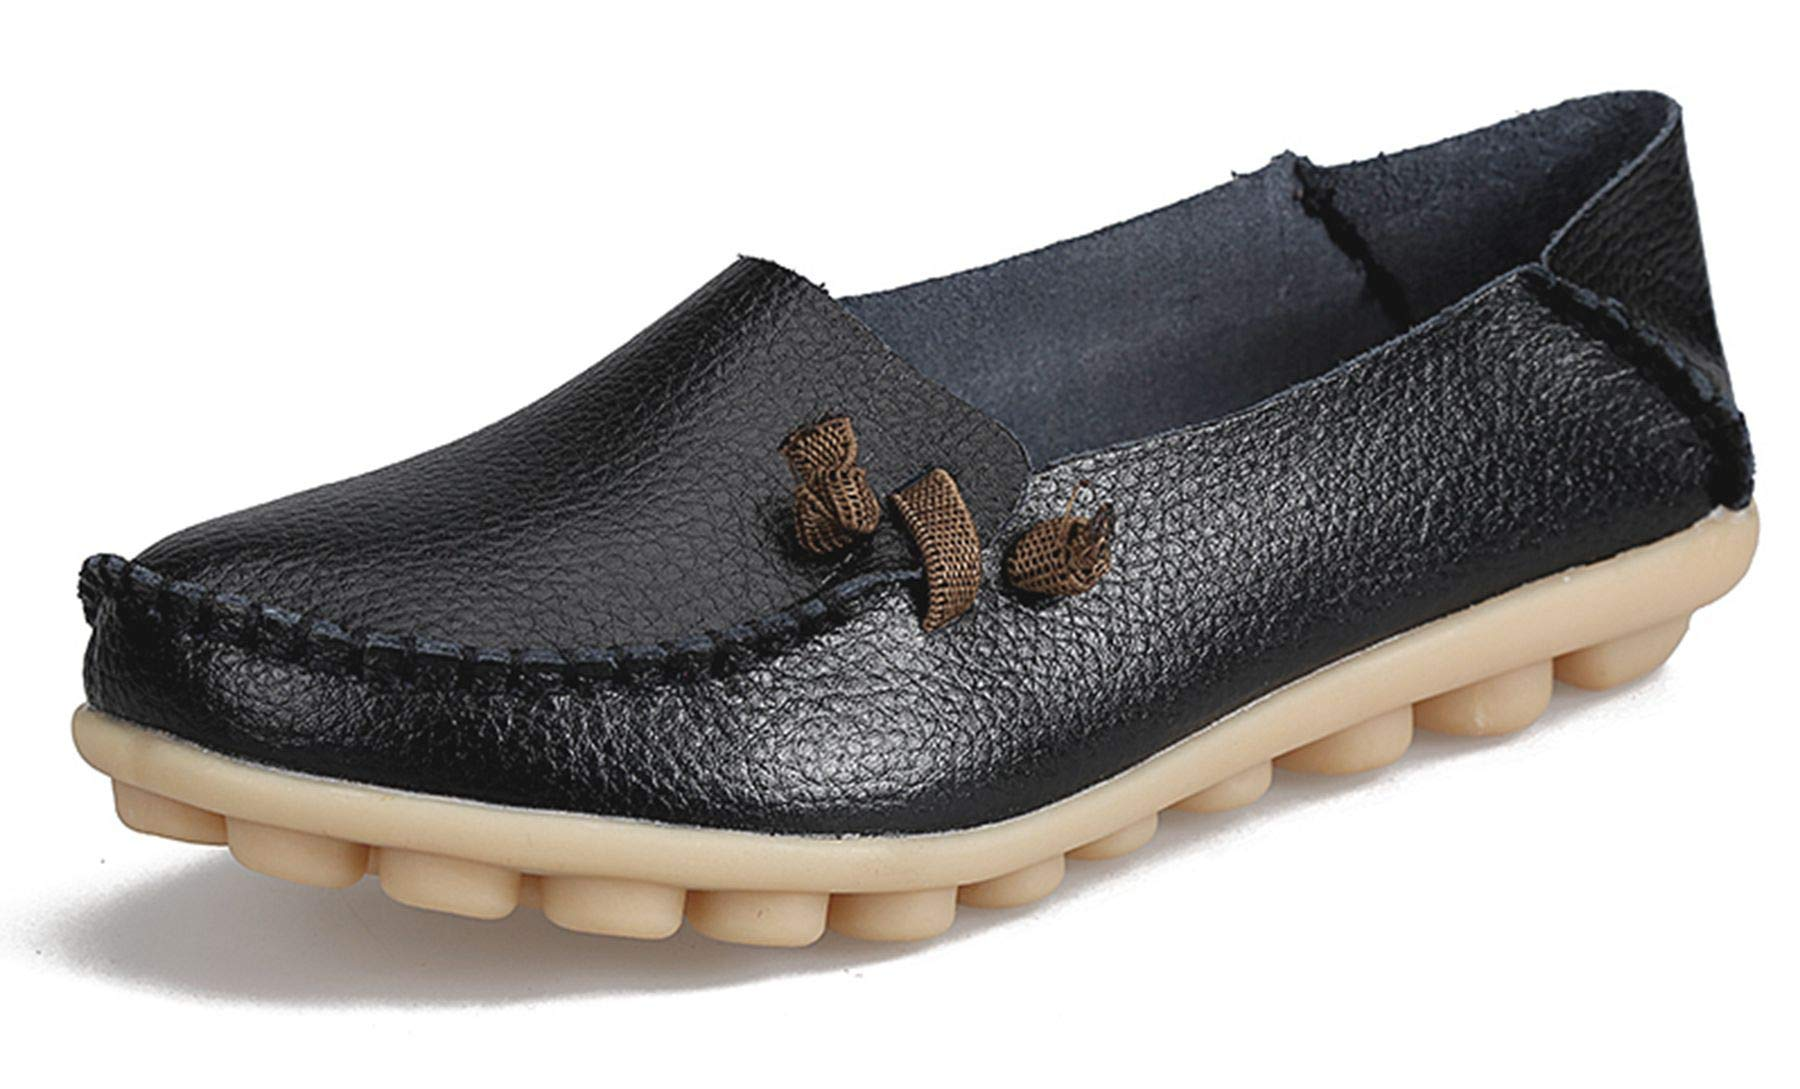 Leather Loafers Breathable Driving Comfort